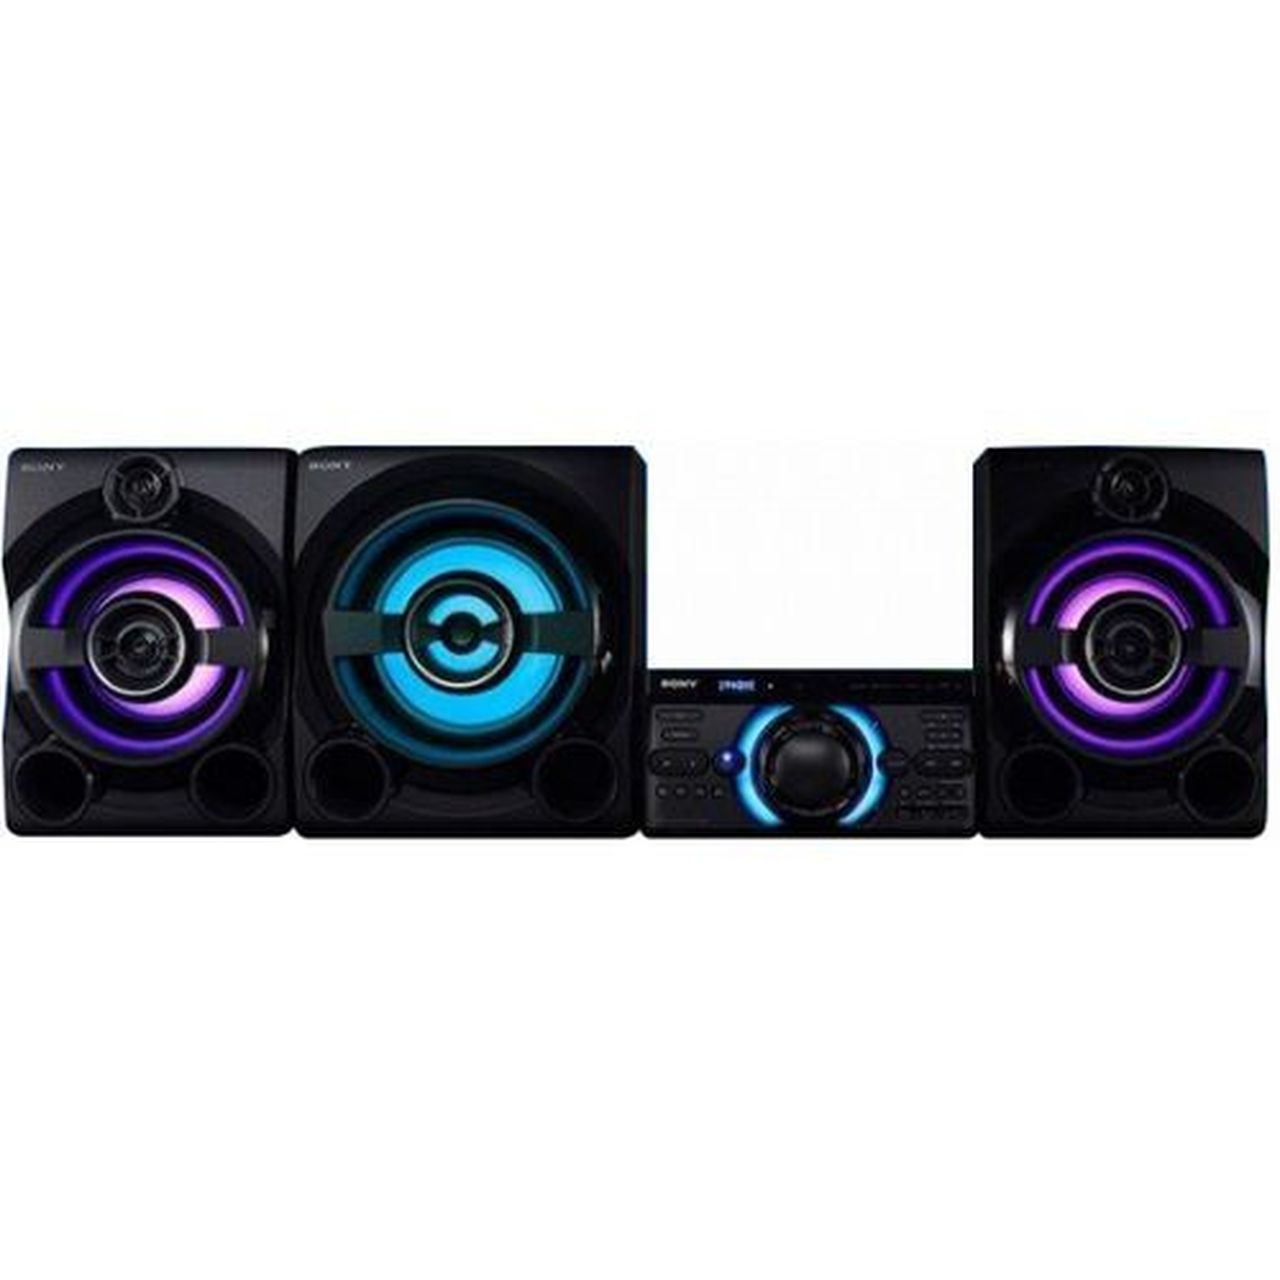 Sony_HOME_AUDIO_SYSTEM_MHC-M80D1__09580.1575729278